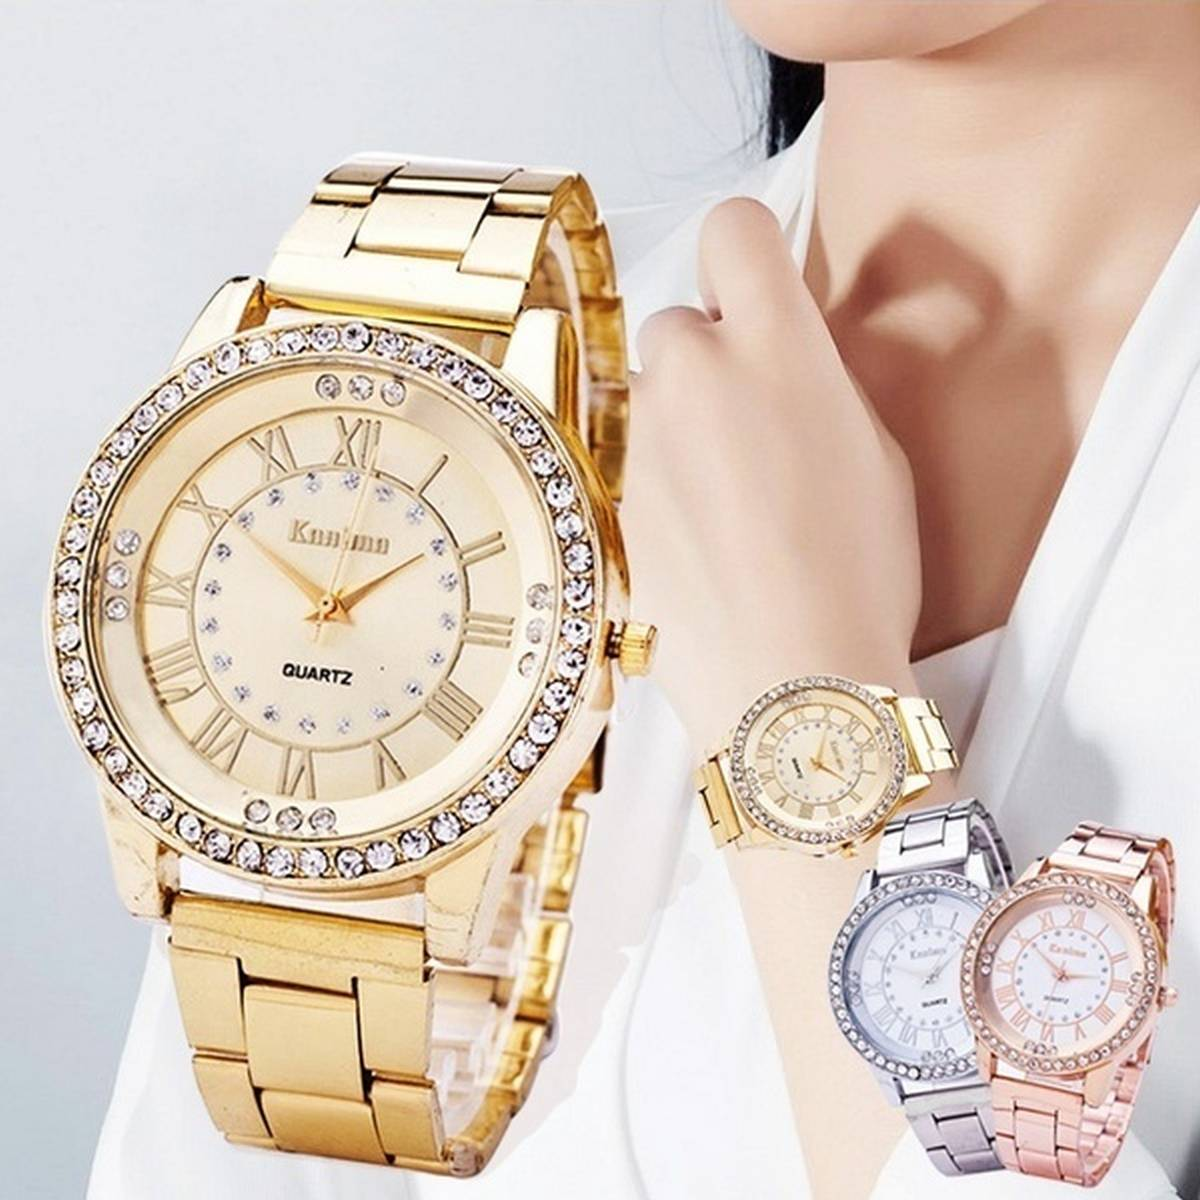 Gearbest Kanima Diamond Lady Golden Color Quartz Watch with Stainless Steel Body